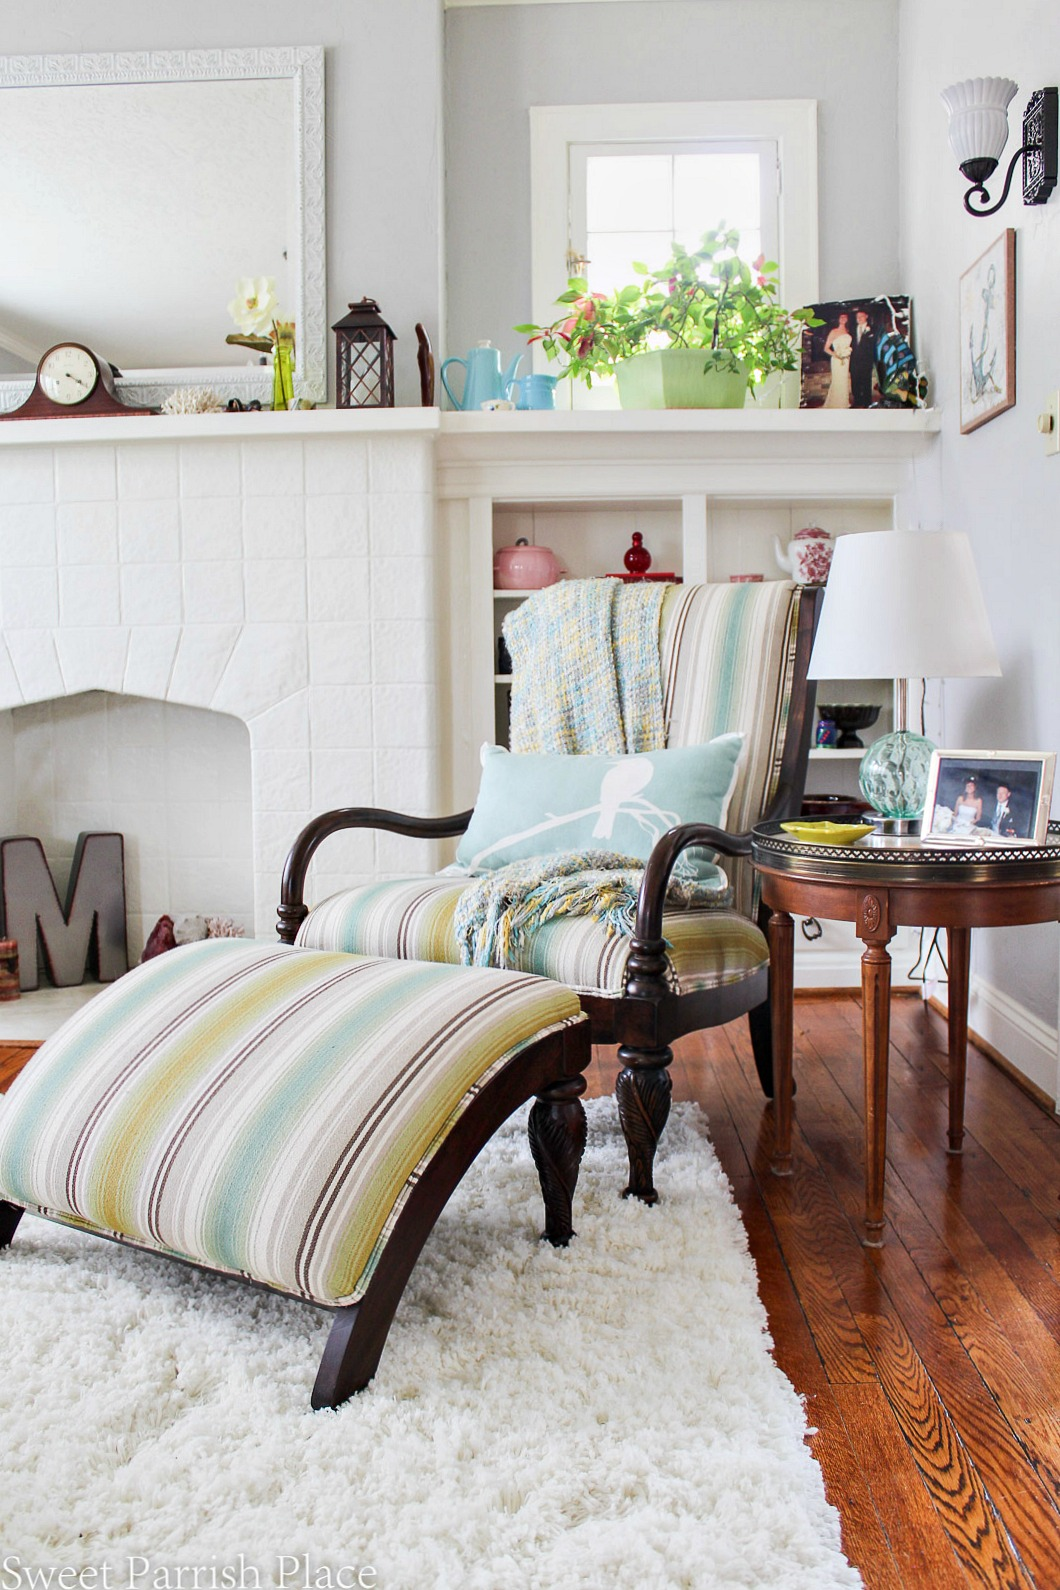 97 year old home tour-Paula Deen Chair